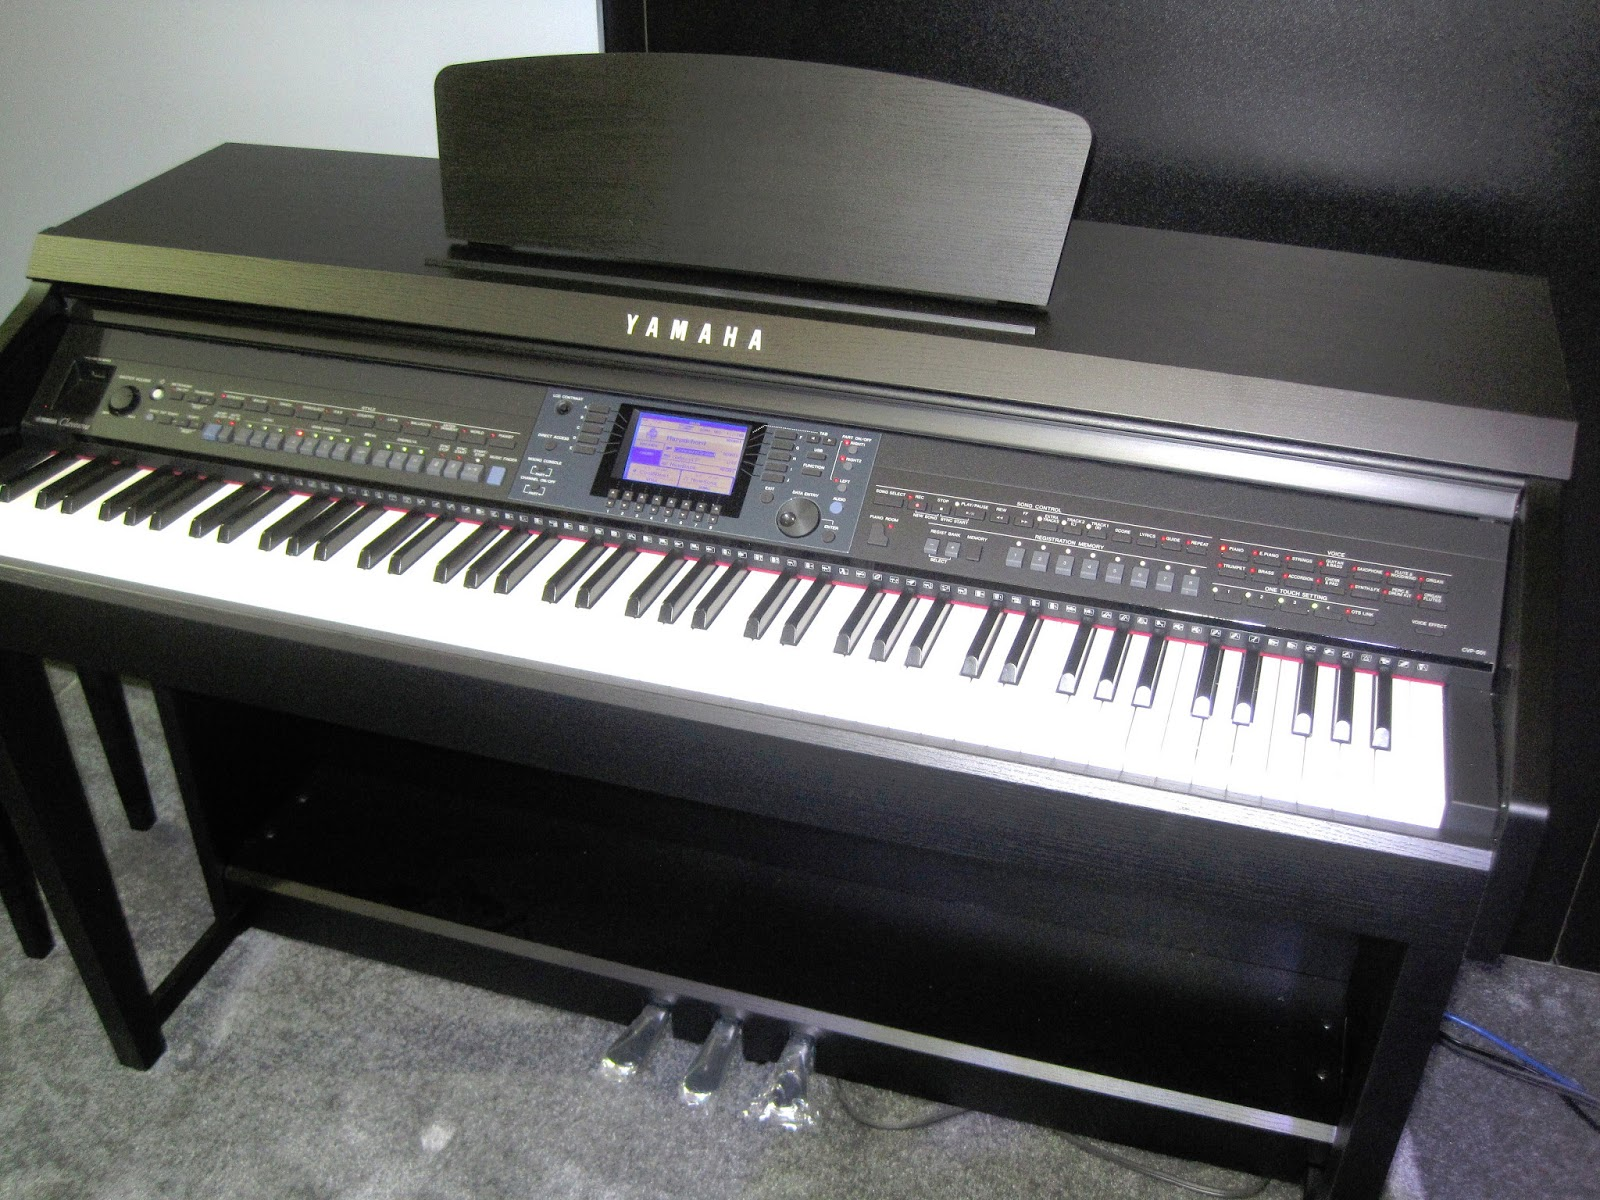 Az piano reviews review yamaha cvp601 vs roland hp506 for Yamaha piano keyboard models